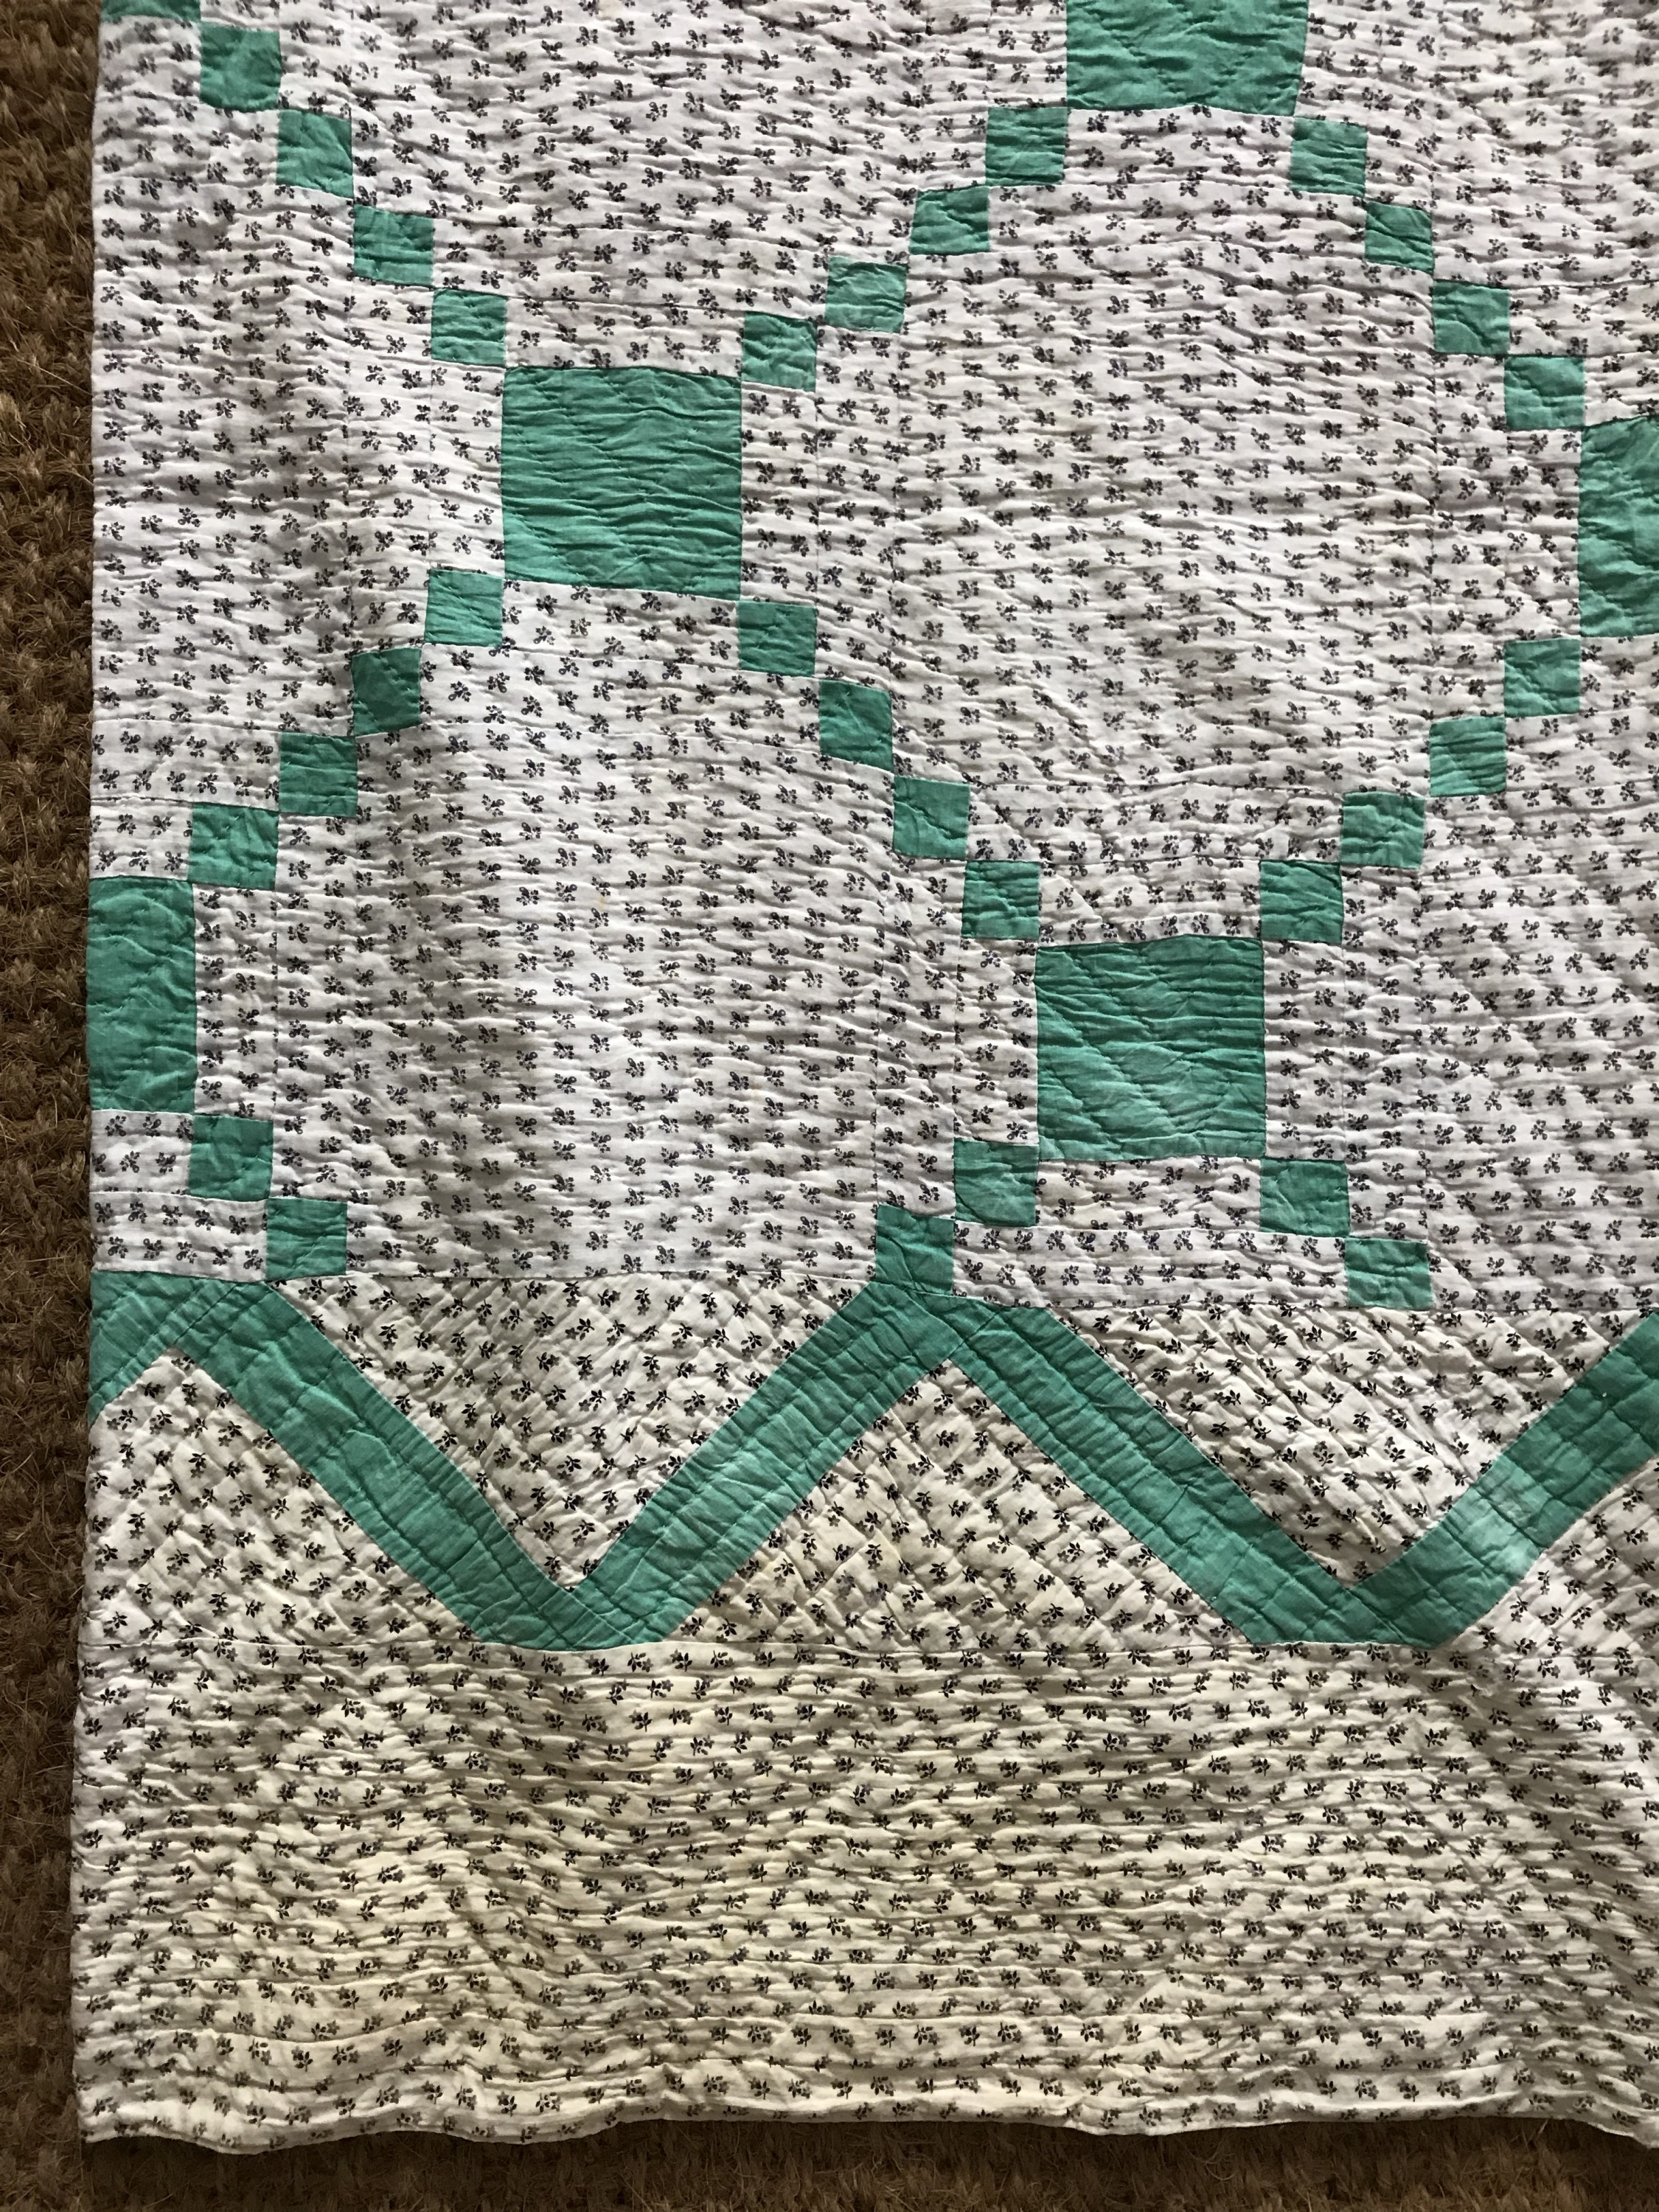 Lot 34 - An early 20th Century patchwork quilt, in a geometric diaper design incorporating mint green and